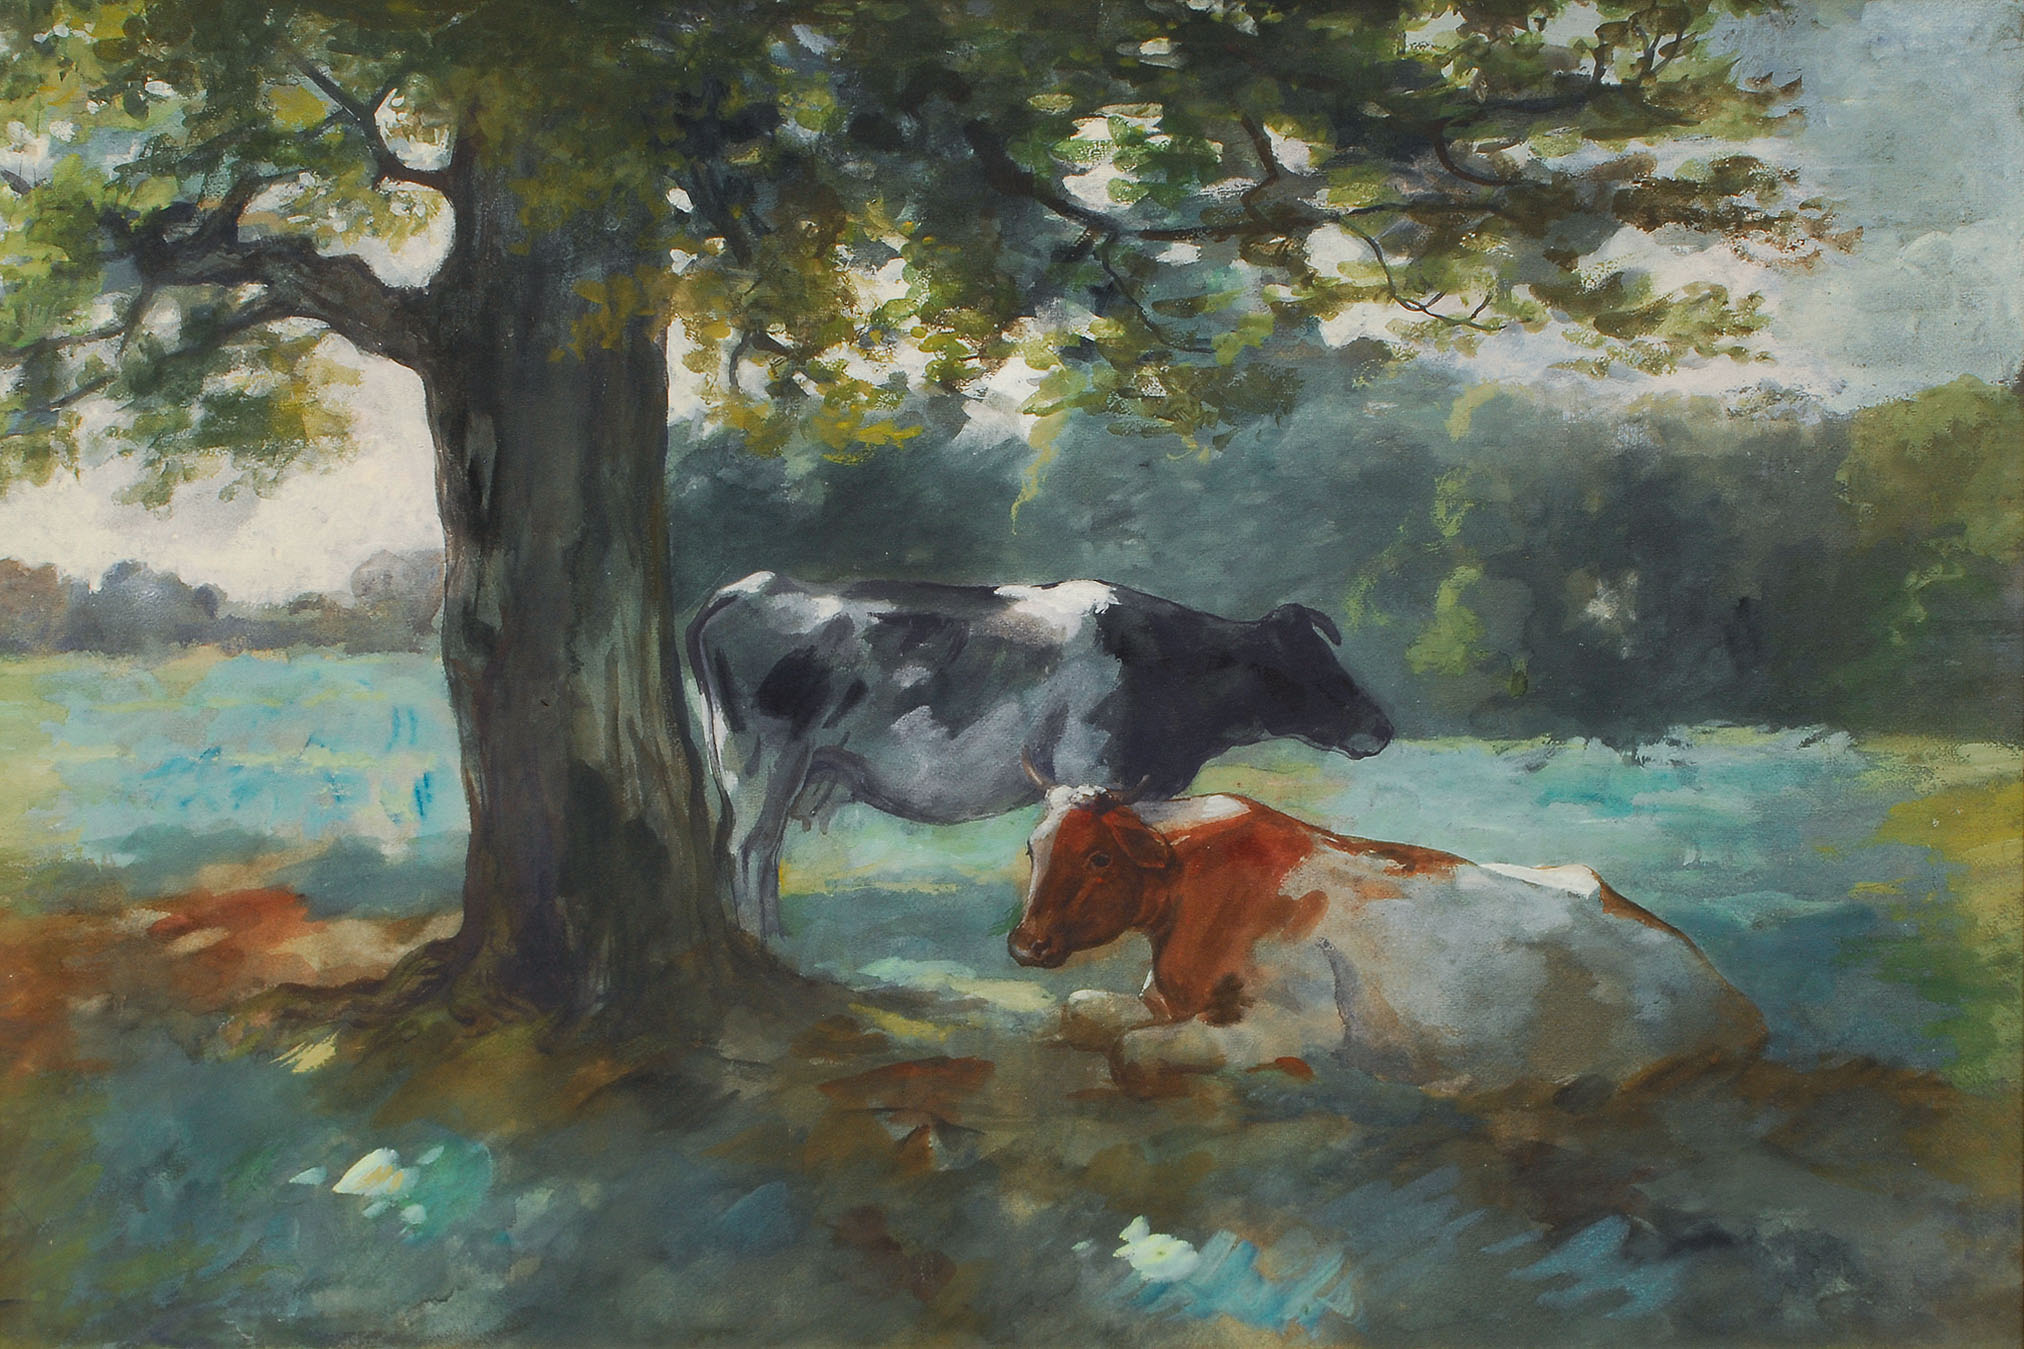 Cattle under a tree